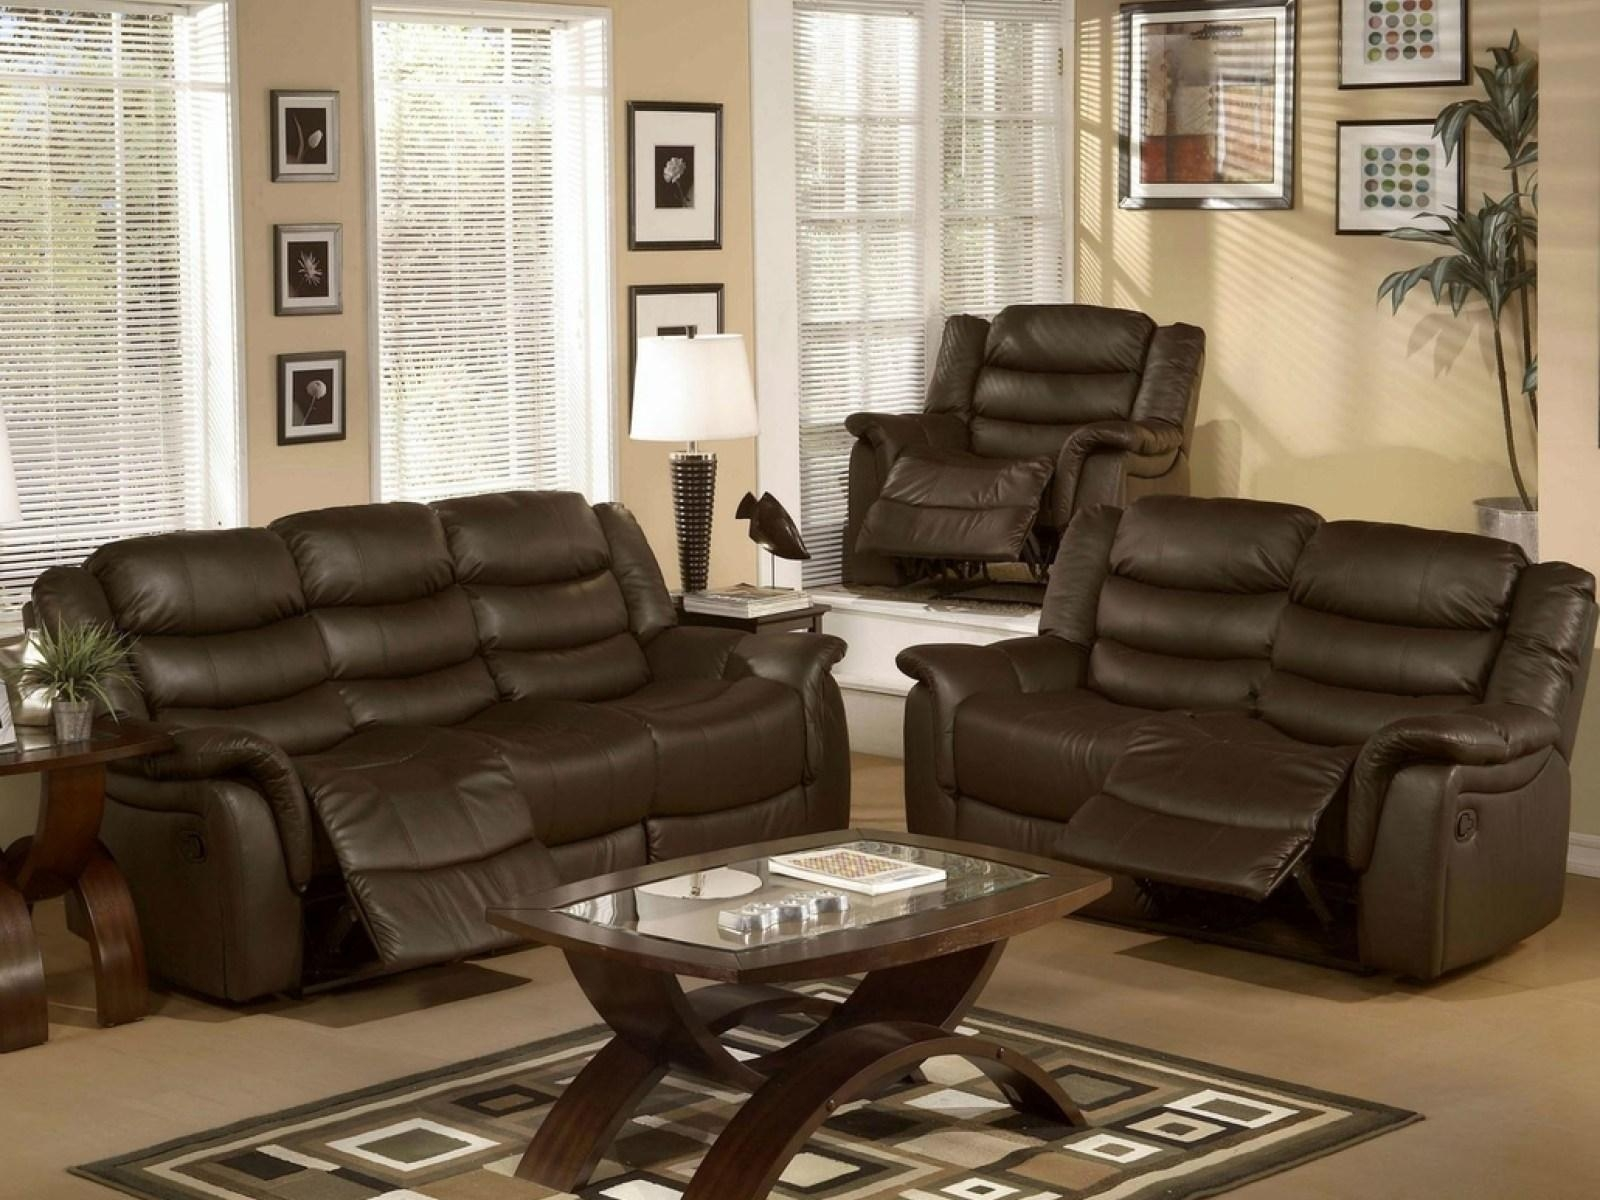 ▻ Sofa : Lovely Loveseat Sofa Riveting Small Apartment Loveseat In Sofa Loveseat And Chair Set (View 16 of 20)